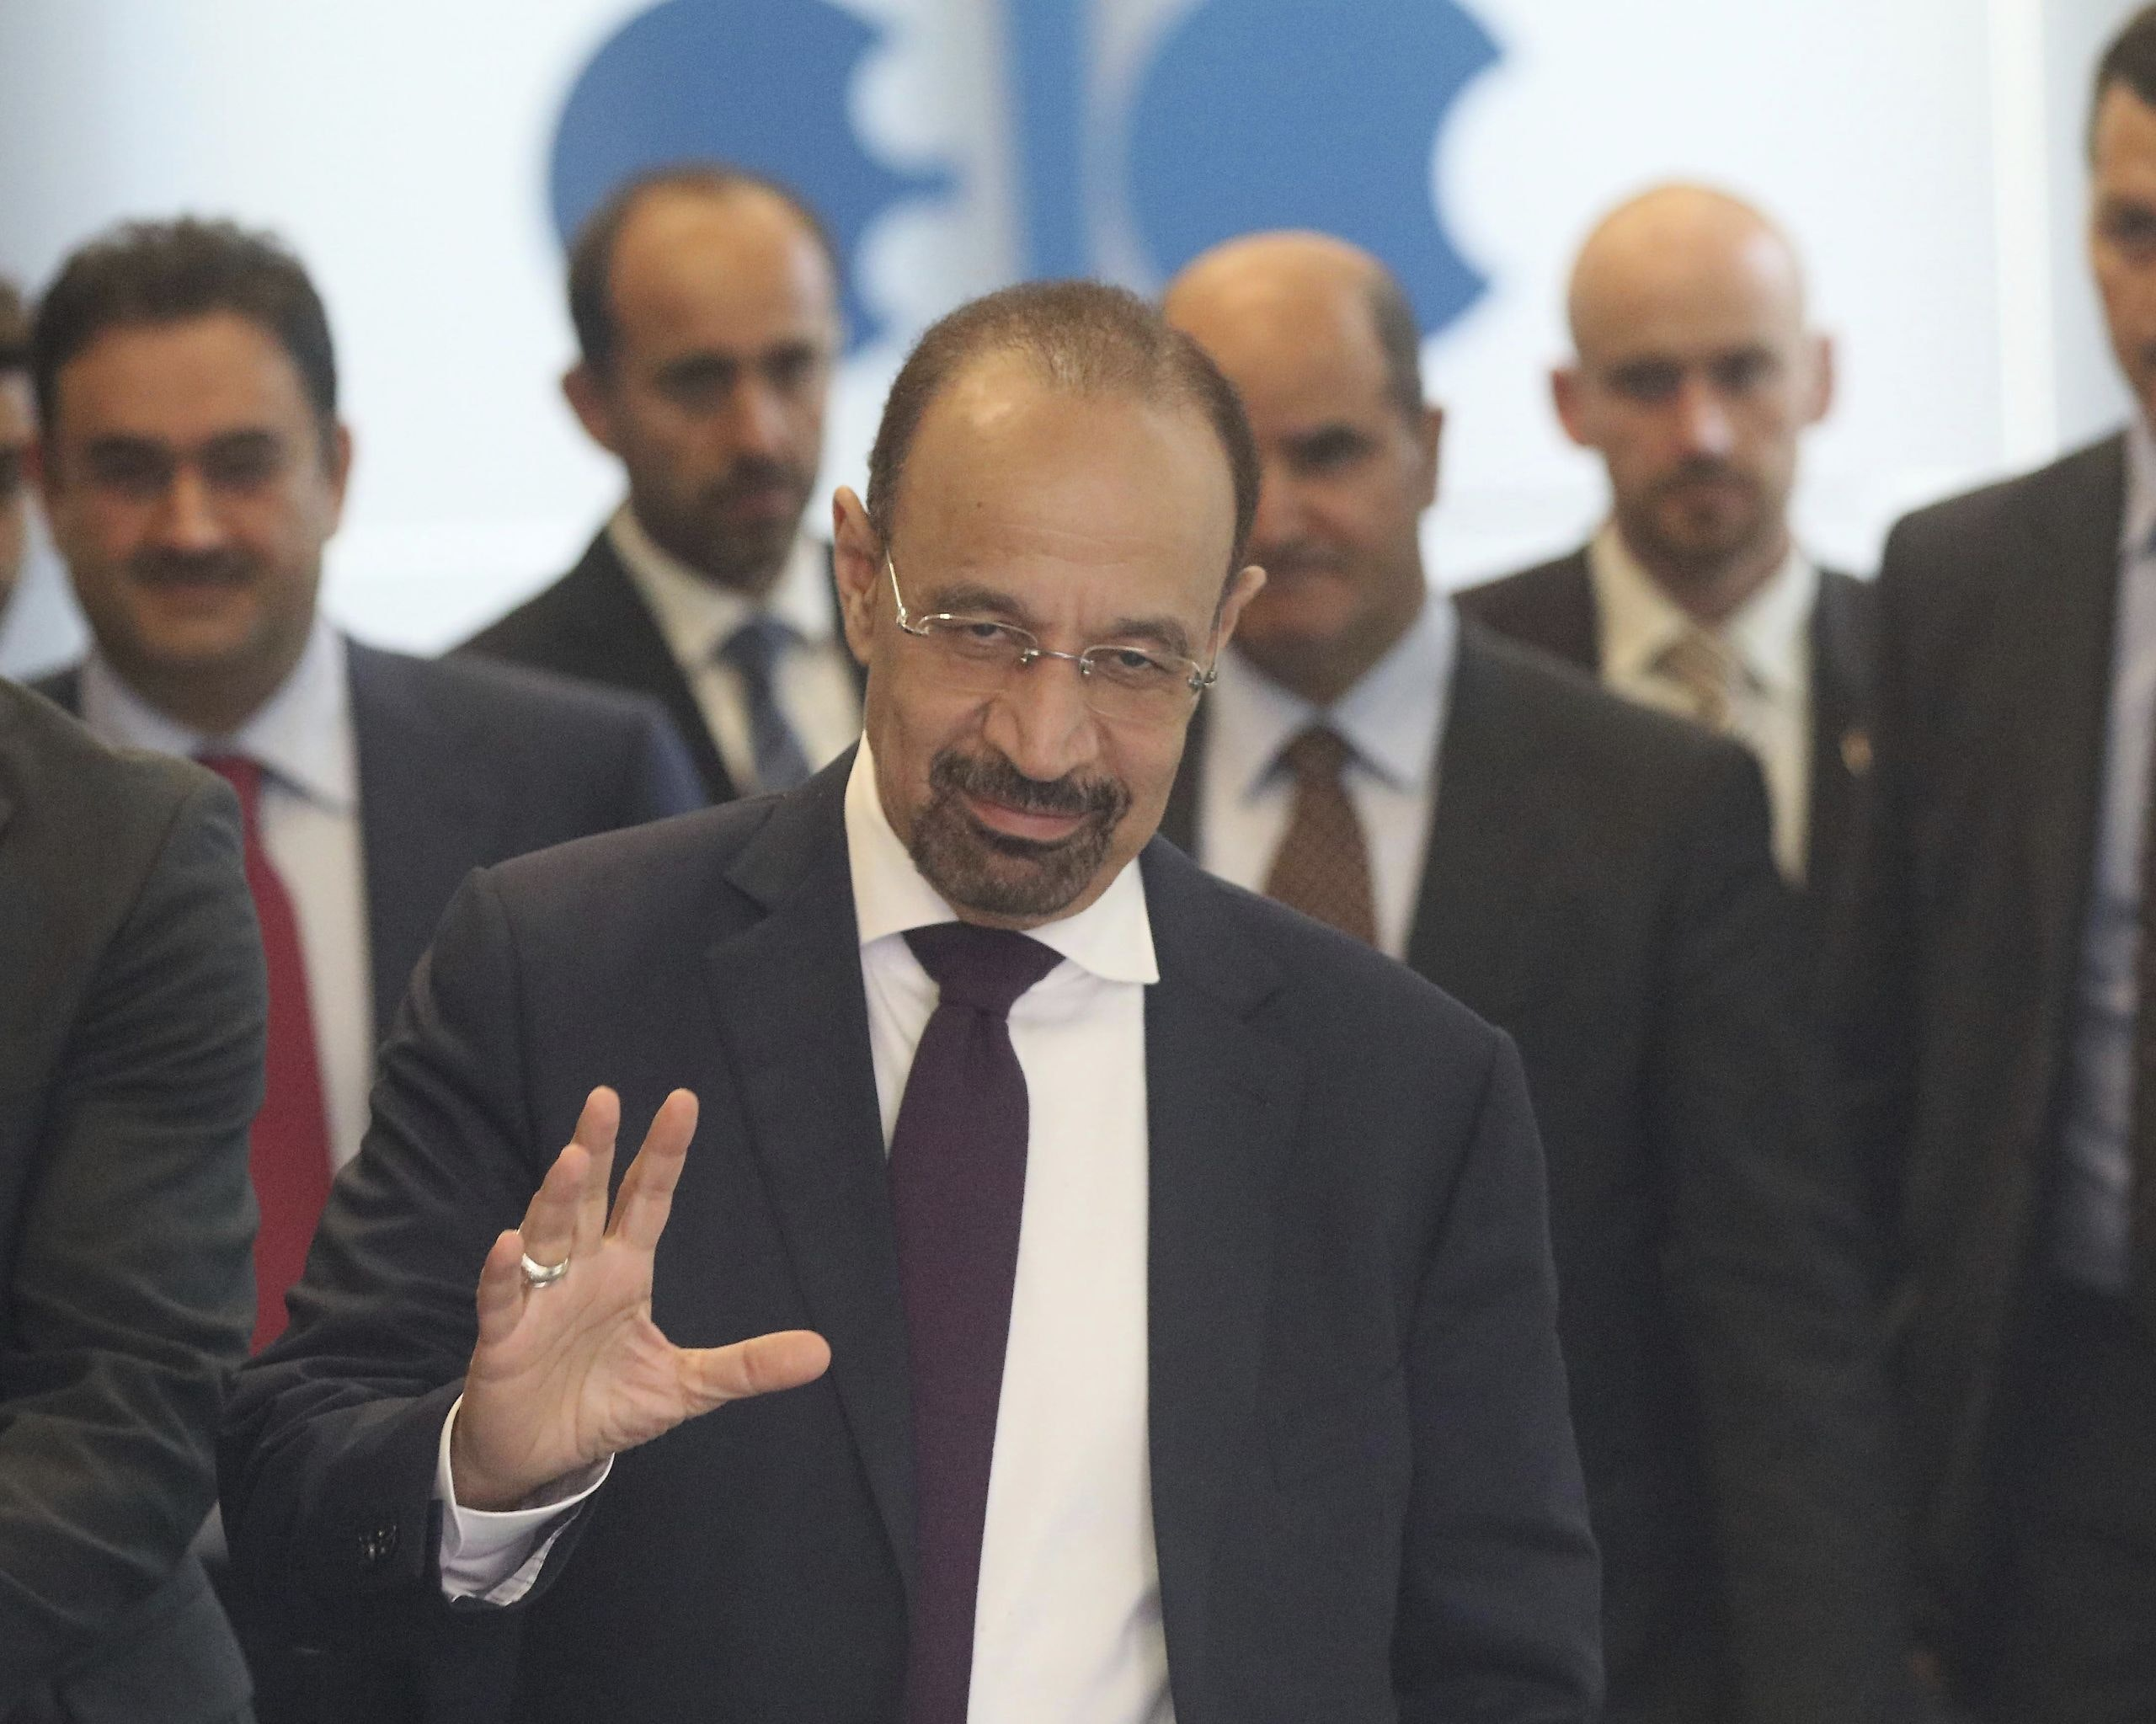 Khalid Al-Falih Minister of Energy, Industry and Mineral Resources of Saudi Arabia leaves the building of the Organization of the Petroleum Exporting Countries, OPEC, at their headquarters in Vienna, Austria, Wednesday, May 24, 2017. (AP Photo/Ronald Zak)